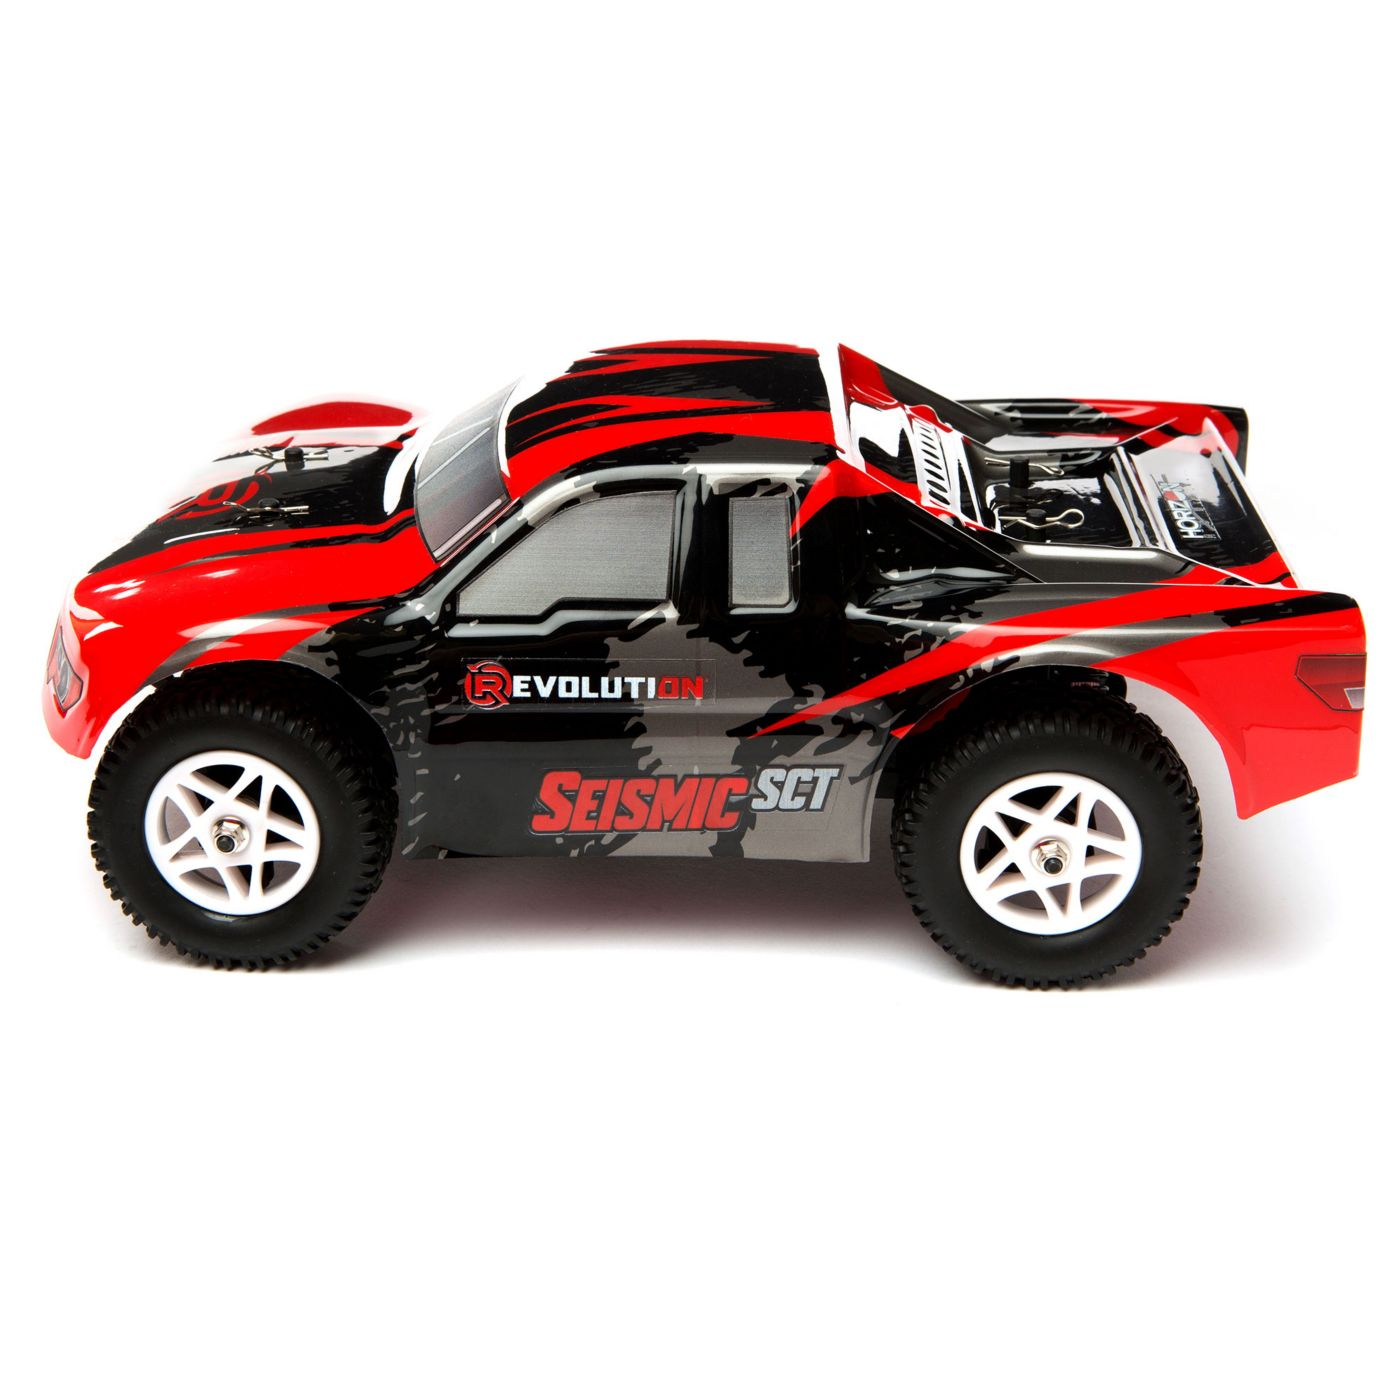 Revolution RC Seismic Short Course Truck - Side